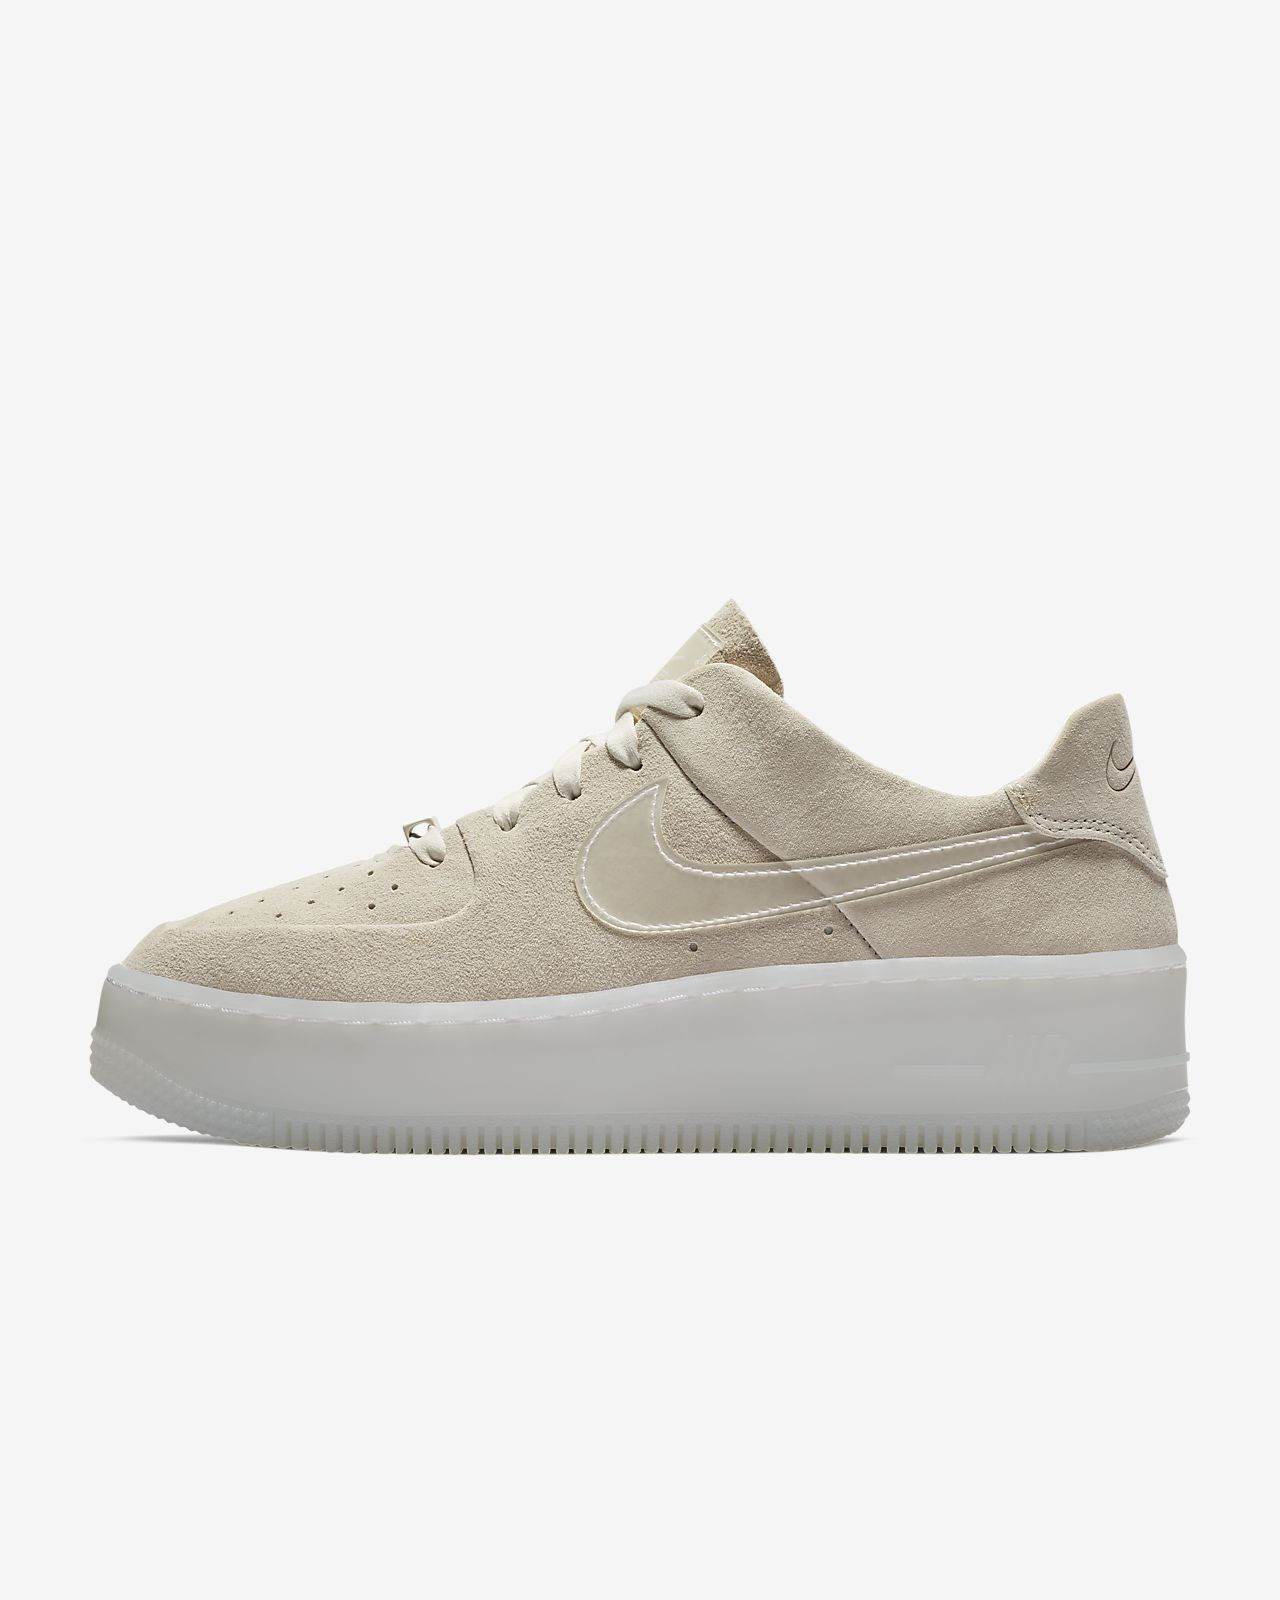 85c0f4a8b7515 Nike Air Force 1 Sage Low LX Zapatillas - Mujer. Nike.com ES